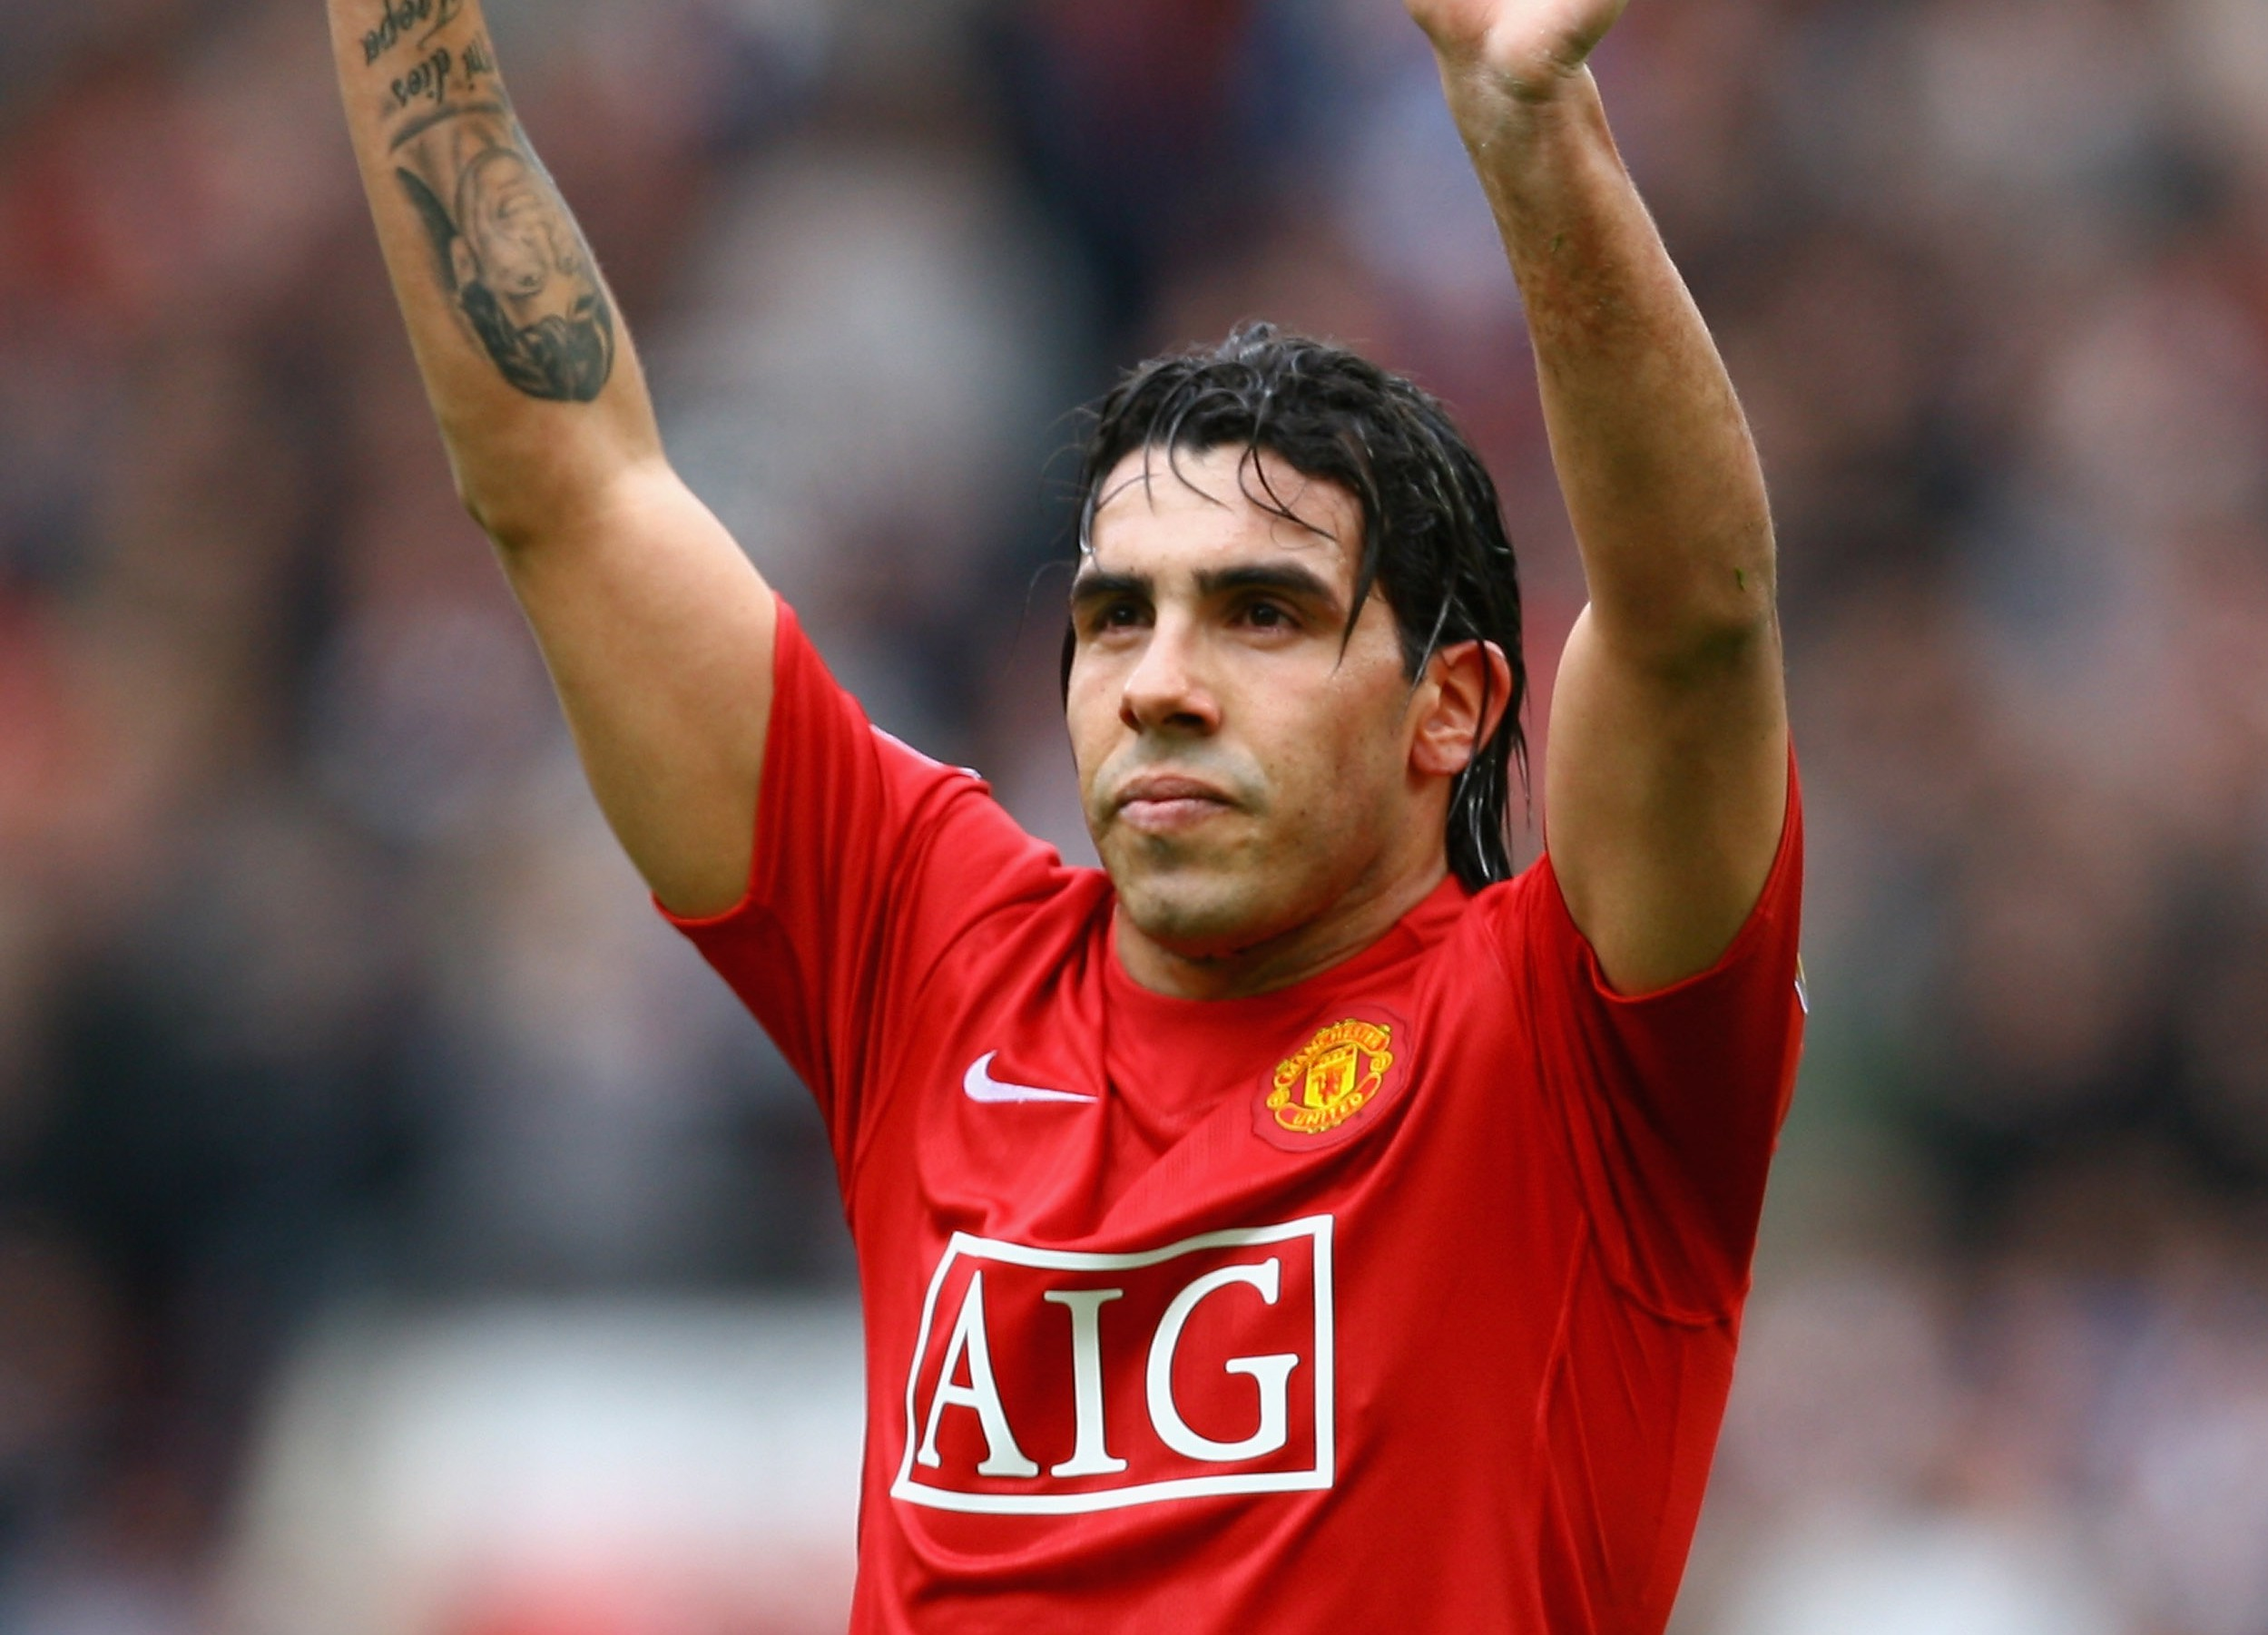 5 reasons Manchester United should re-sign Carlos Tevez rather than Cristiano Ronaldo